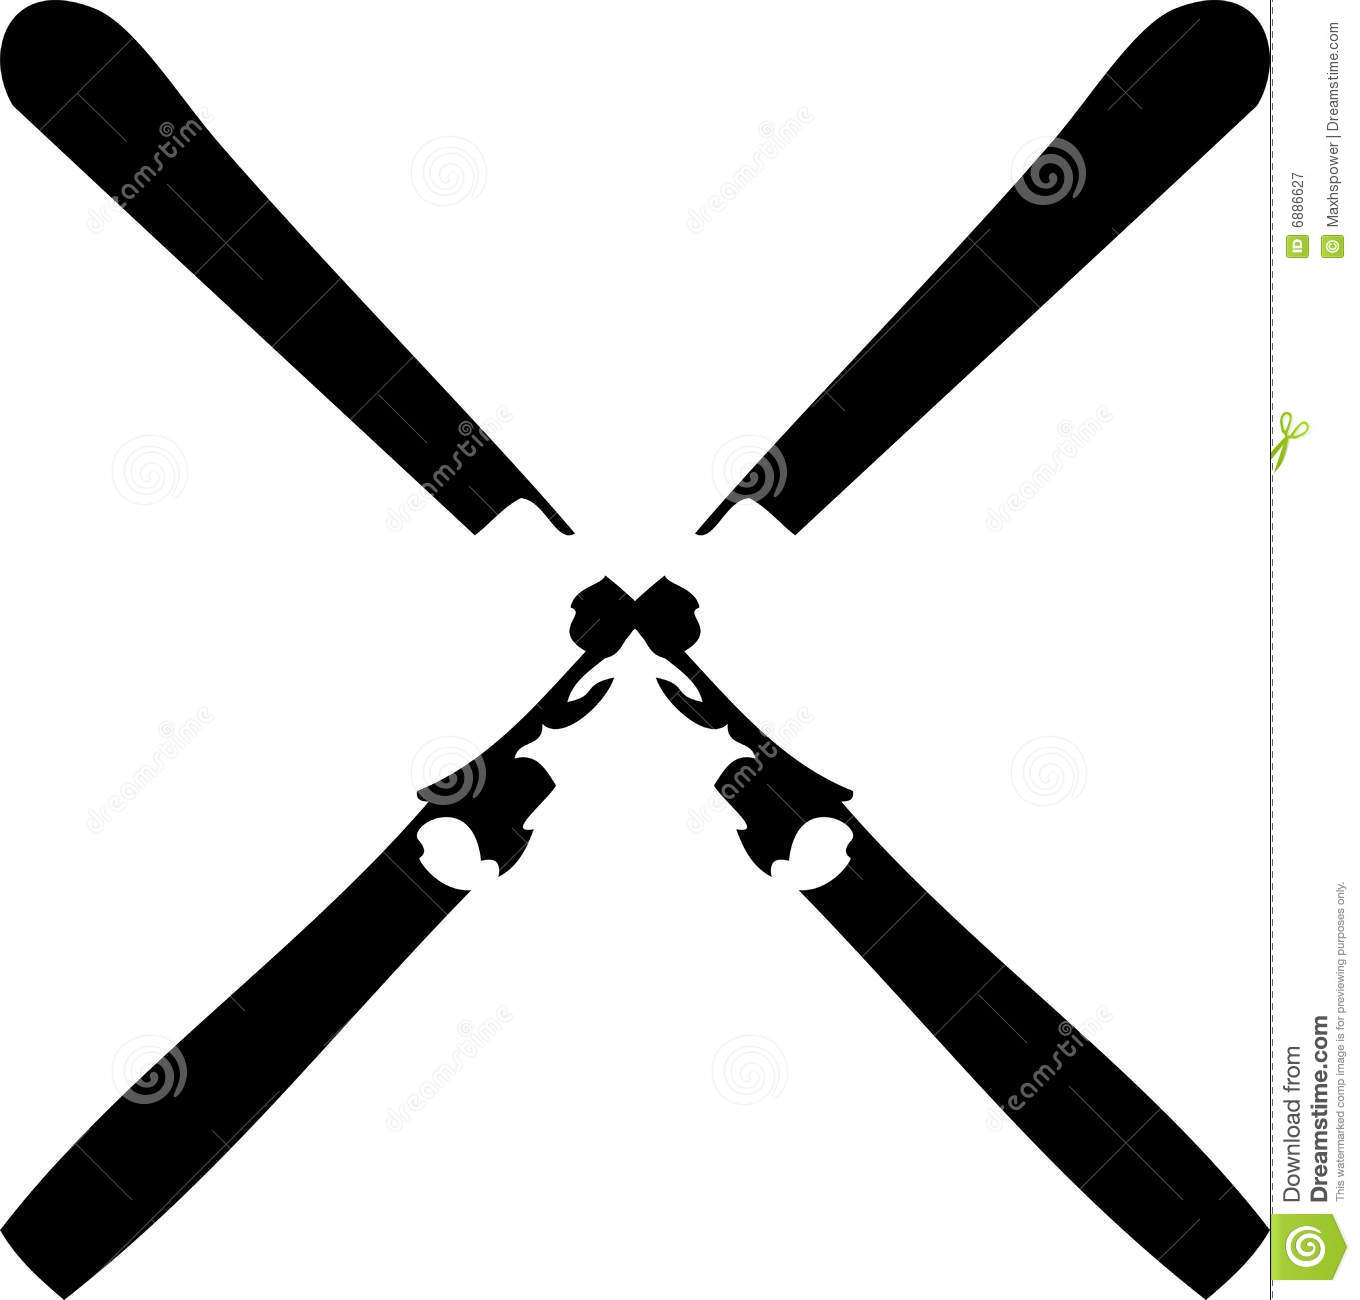 Ski Crossed Royalty Free Stock Photography - Image: 6886627